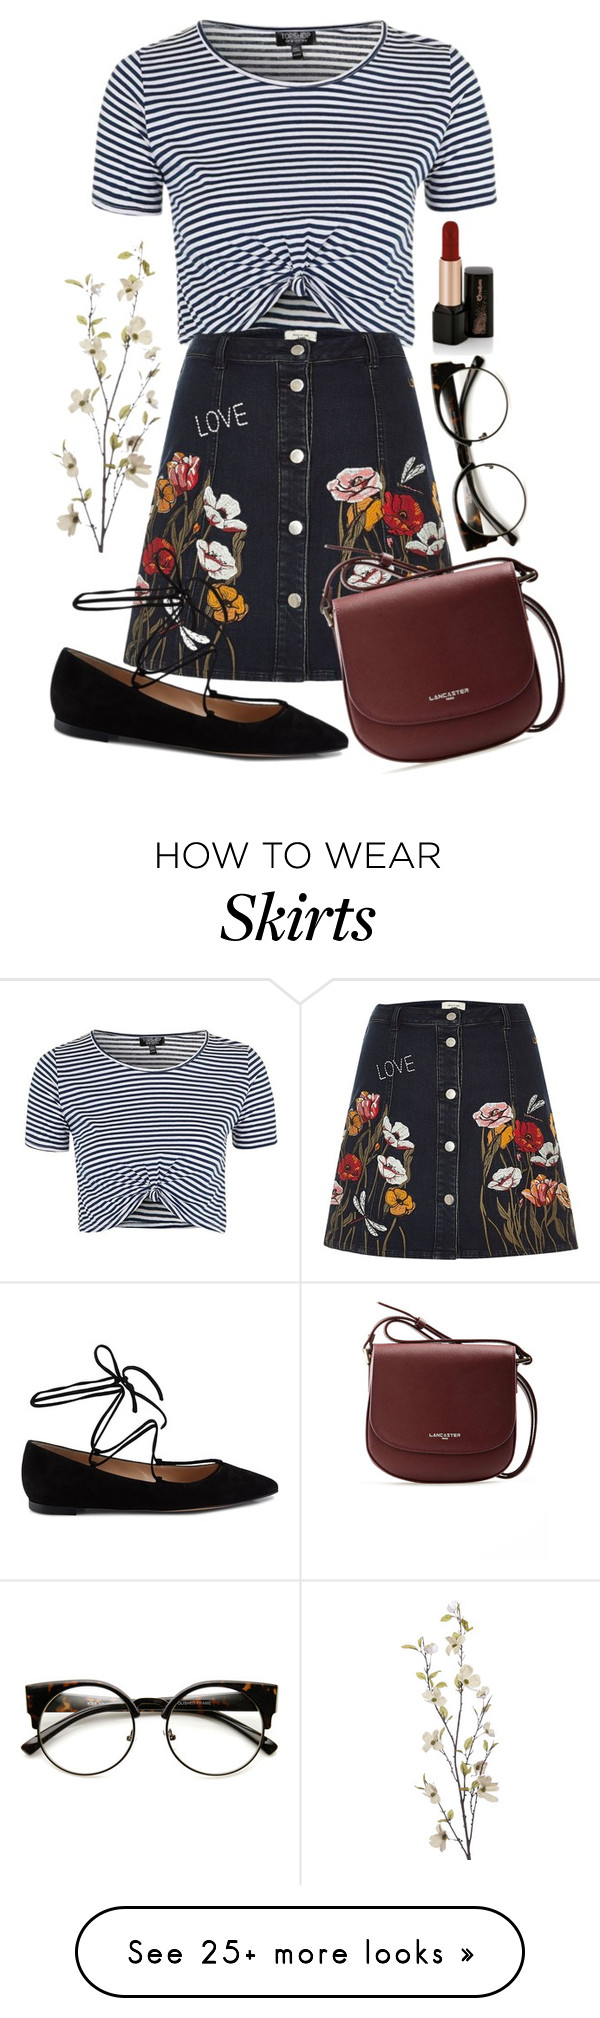 """Mandy"" by thefashionguilty on Polyvore featuring Topshop, River Island, Gianvito Rossi, Lancaster, Pier 1 Imports and ZeroUV"